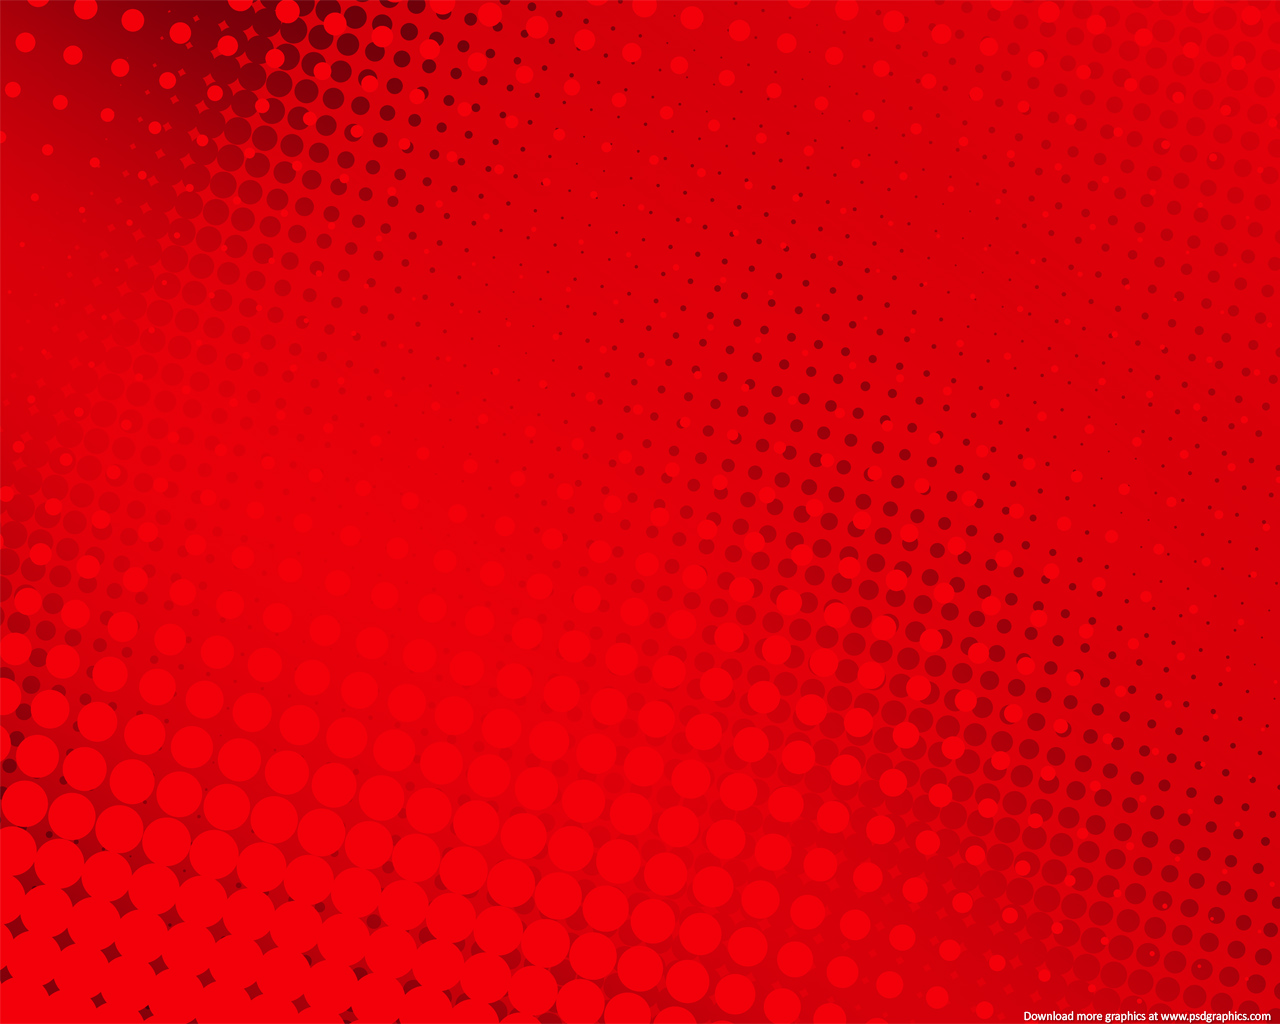 Blue Space Galaxy Pla  Beauty 1600x900 moreover Space Doggy Iphone 4 wallpapers 710 640x960 1 moreover 27secret Society Wallpaper I likewise EA B3 A0 EB AF BC EA B7 9C together with Red Color Wallpapers. on space wallpaper